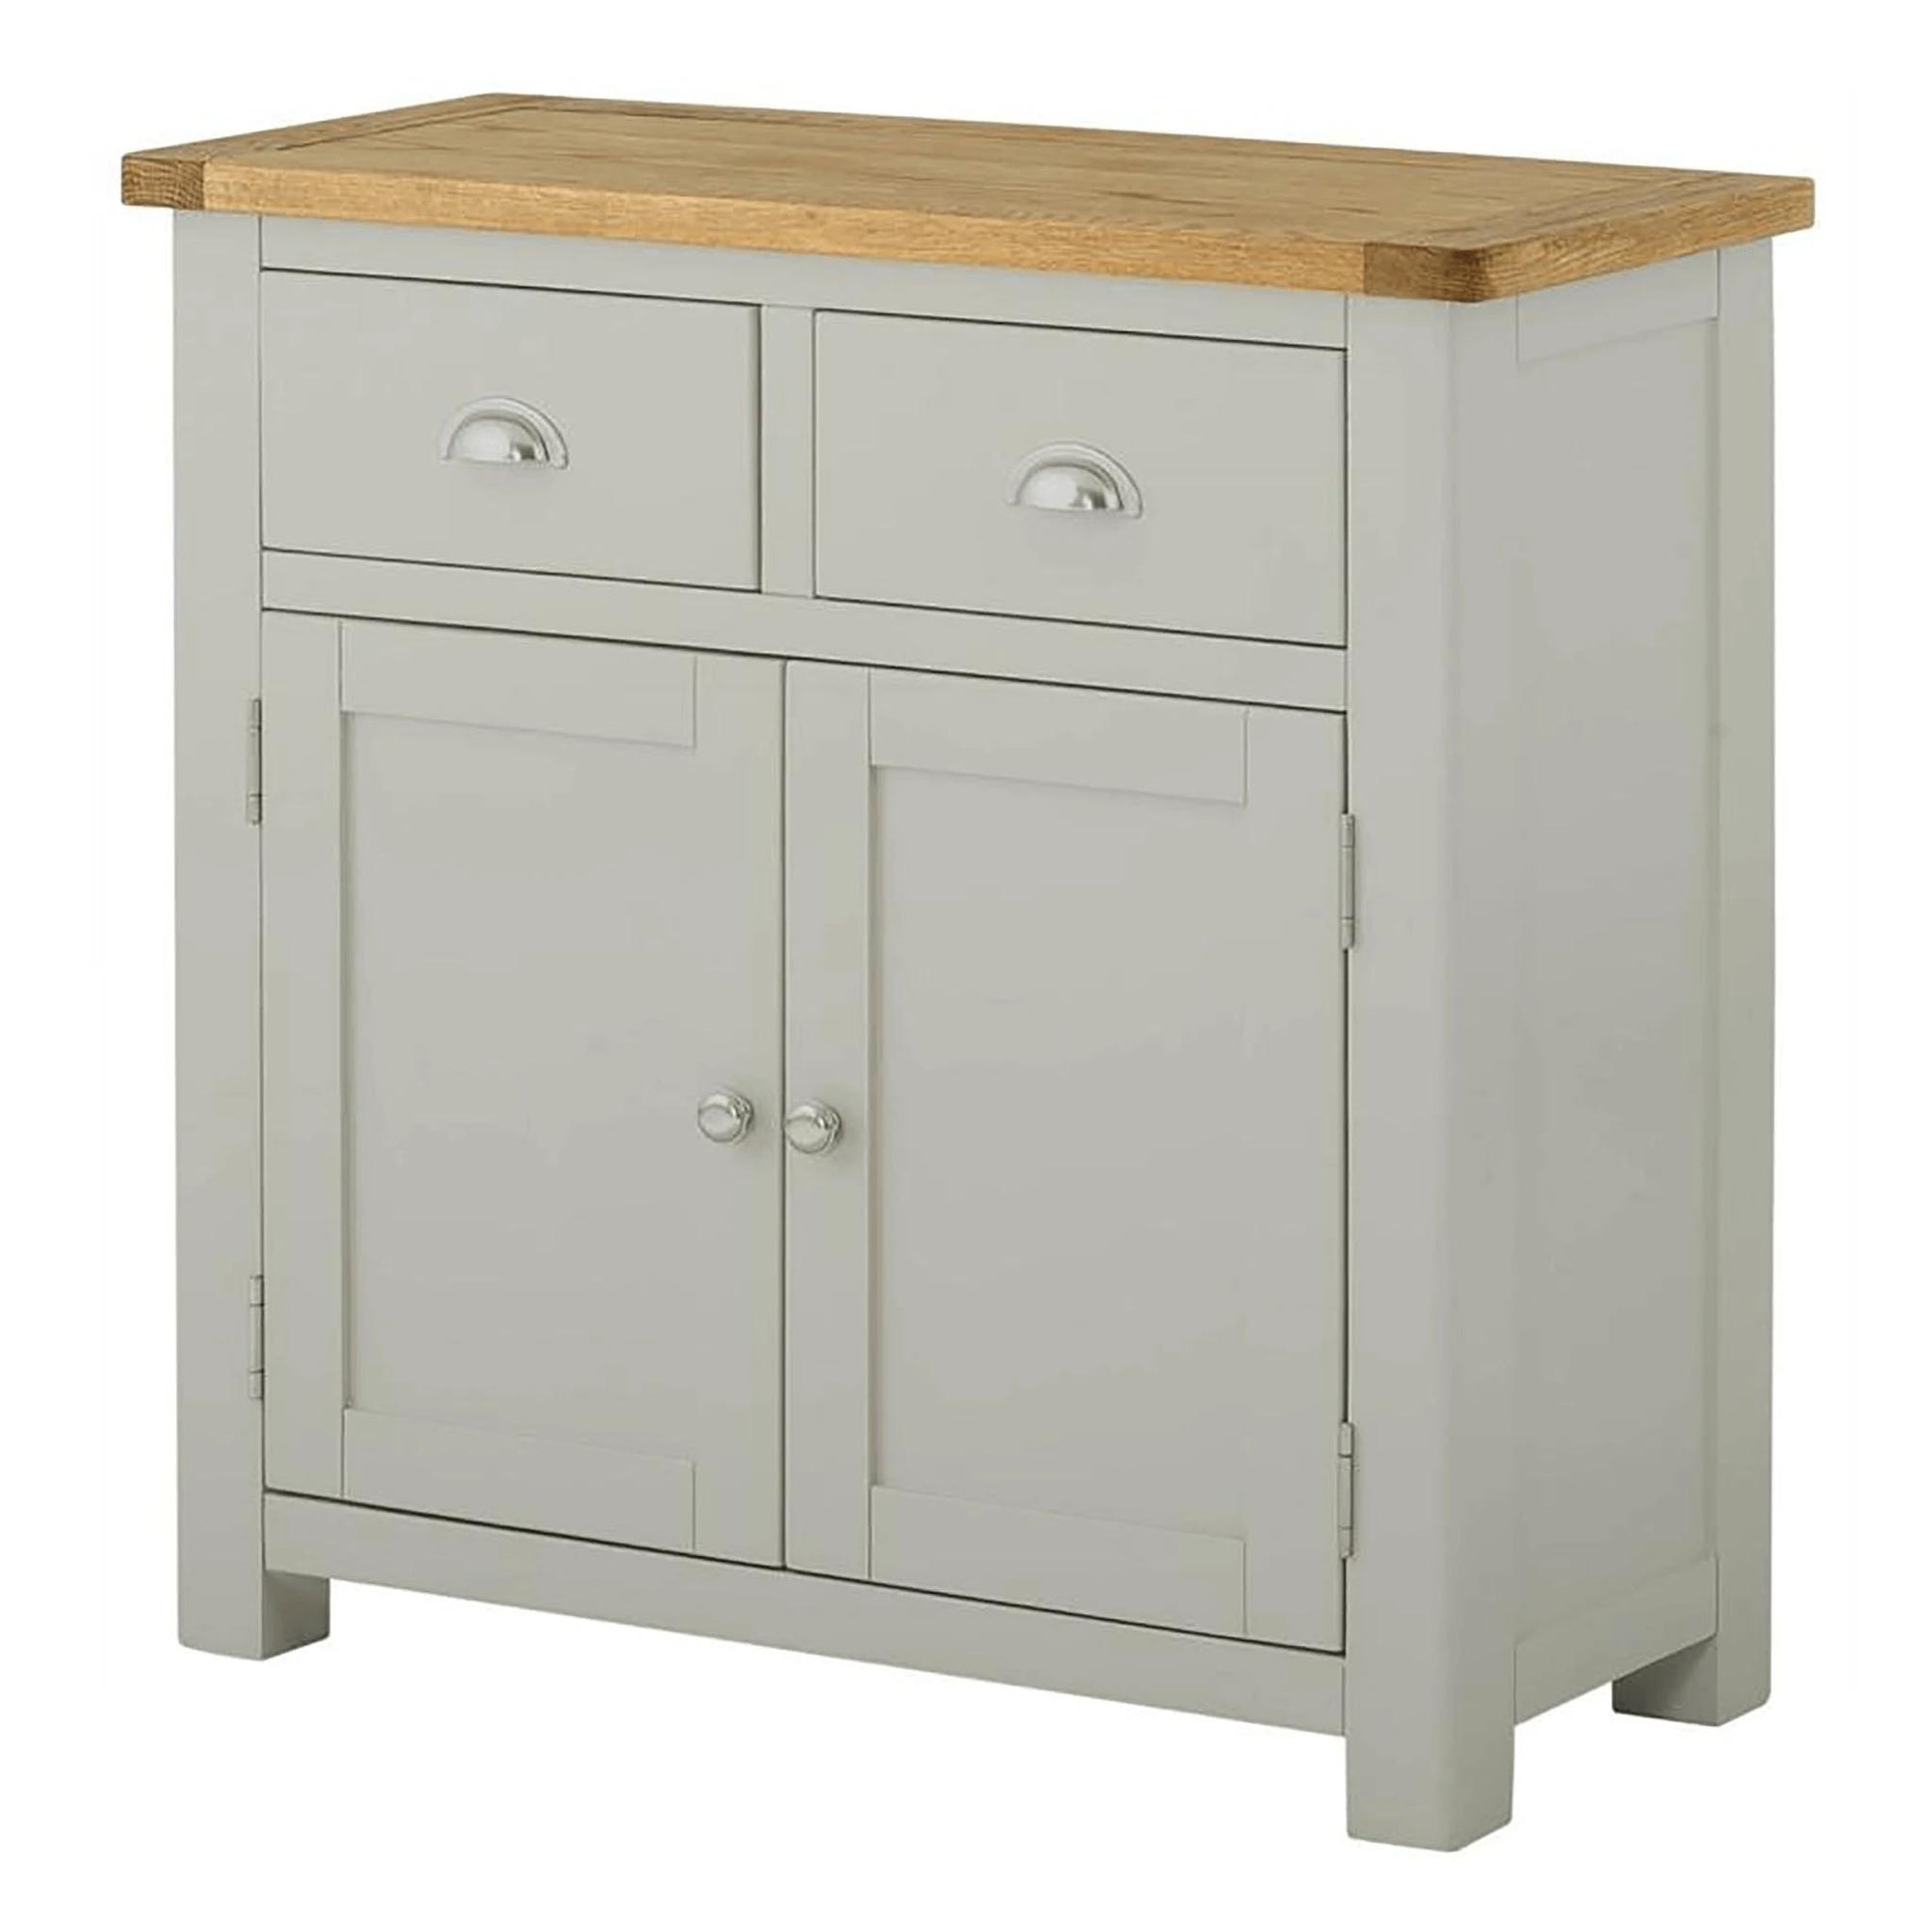 The Padstow Grey Small 2 Door Sideboard from Roseland Furniture